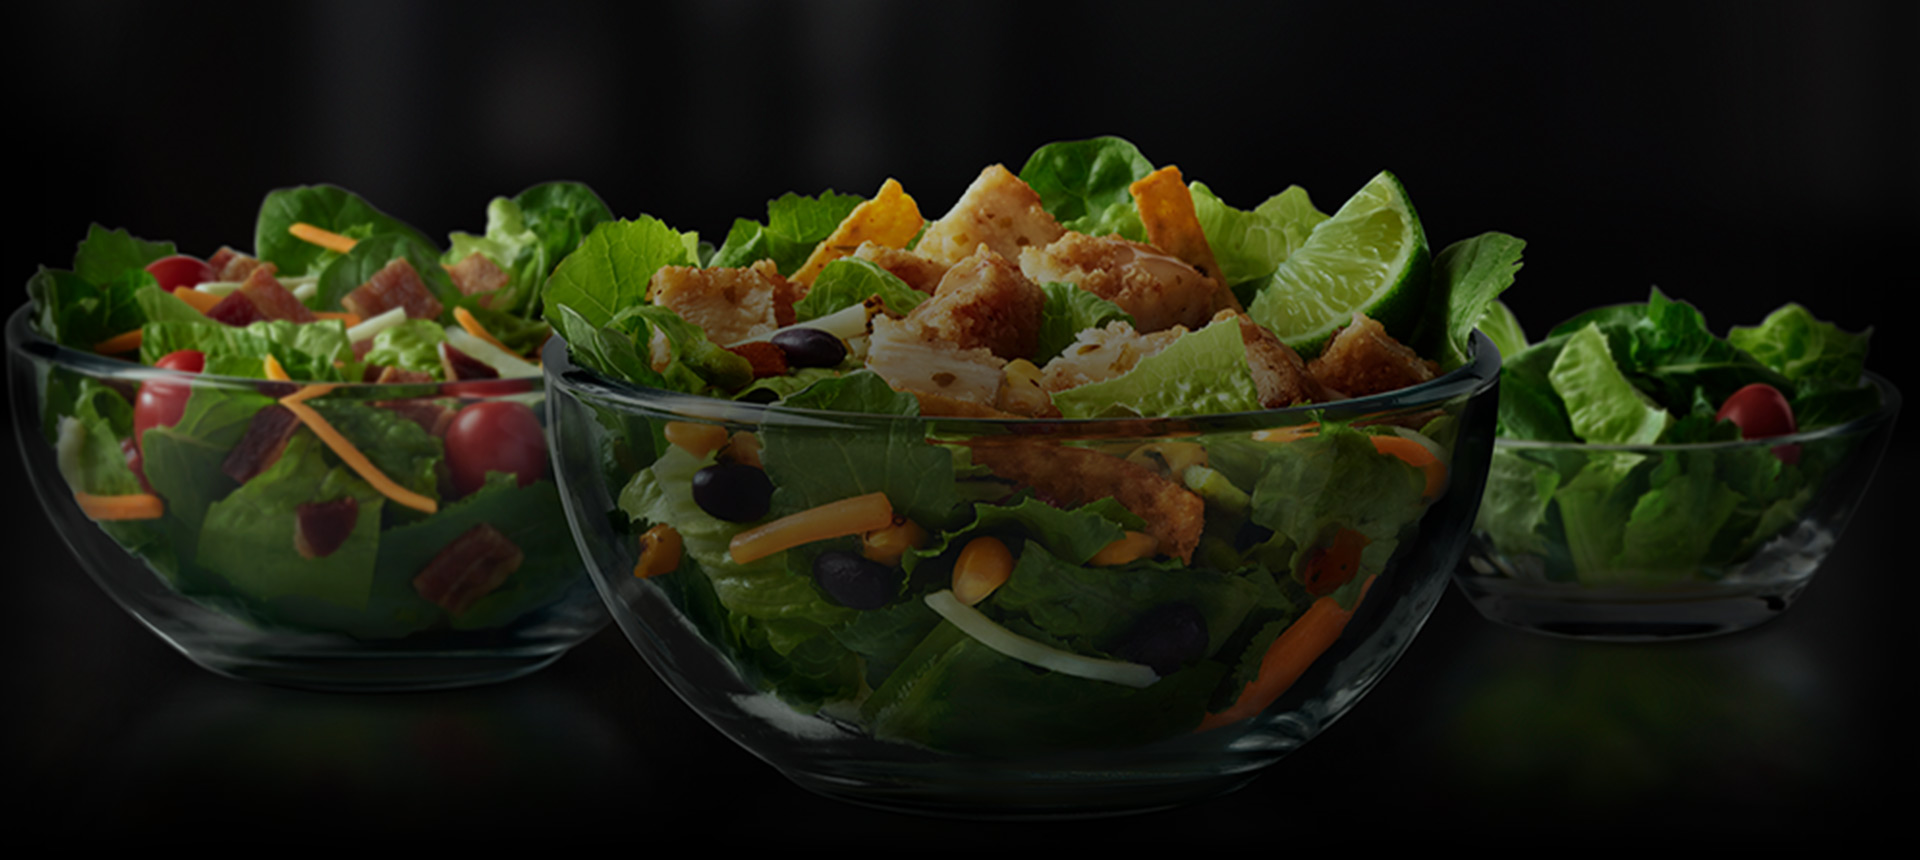 UPDATE: McDonald's Stops Selling Salads After 507 People Are Sickened